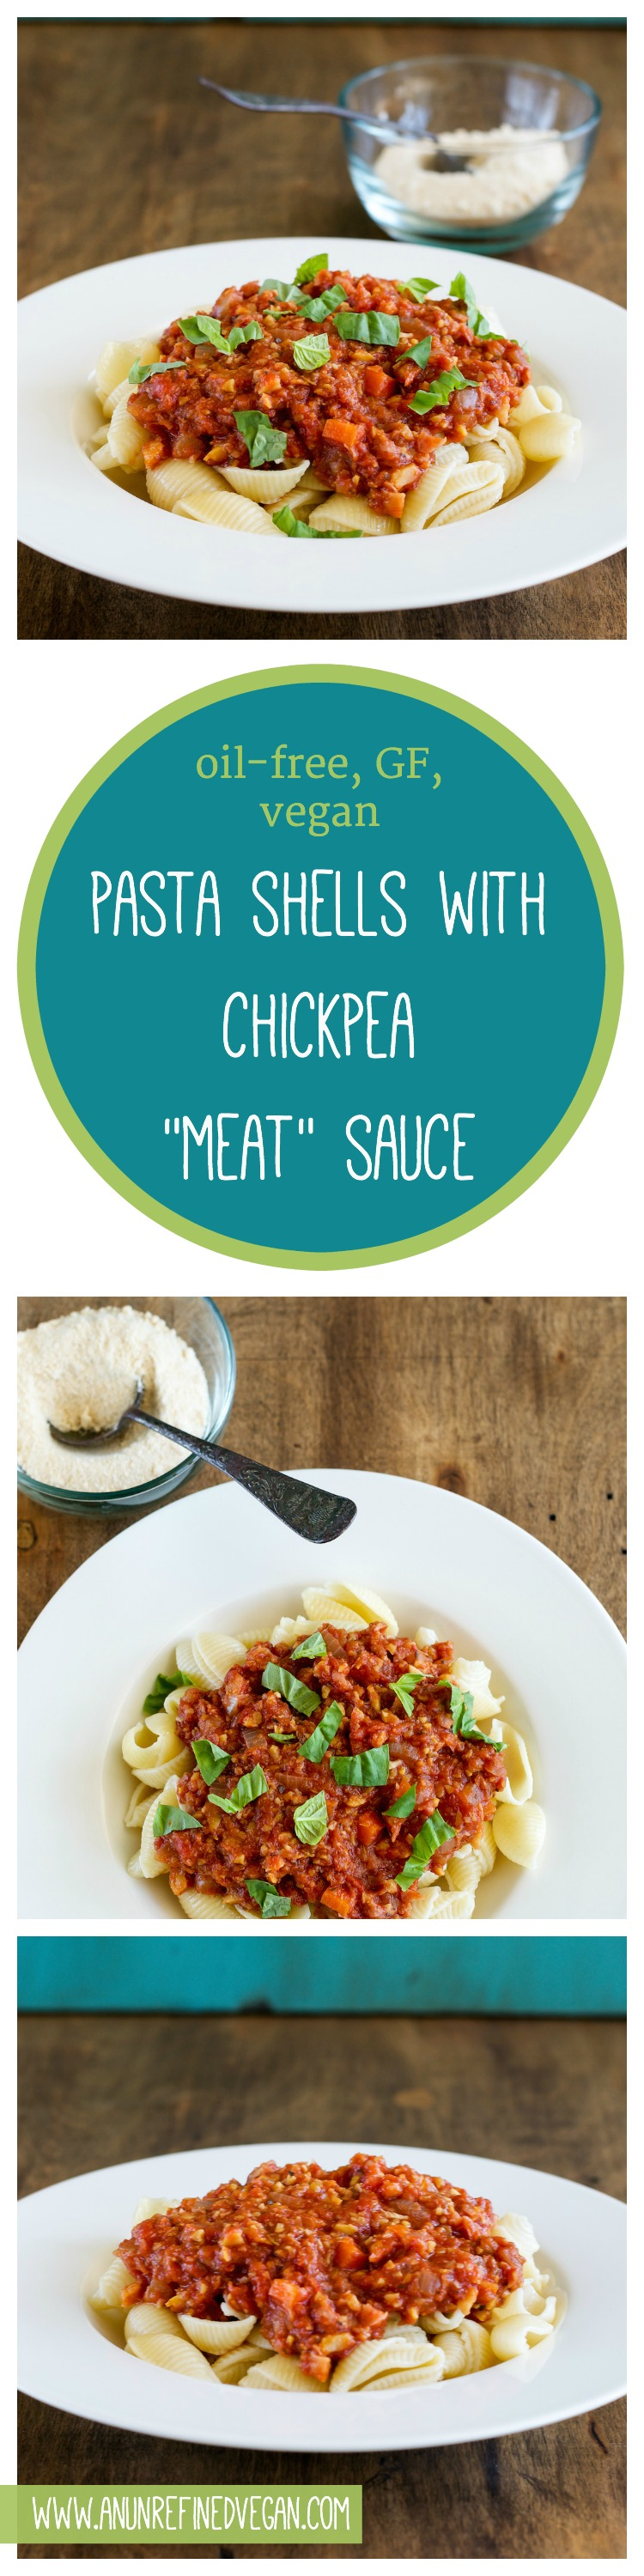 """GF Pasta Shells with Chickpea """"Meat"""" Sauce 